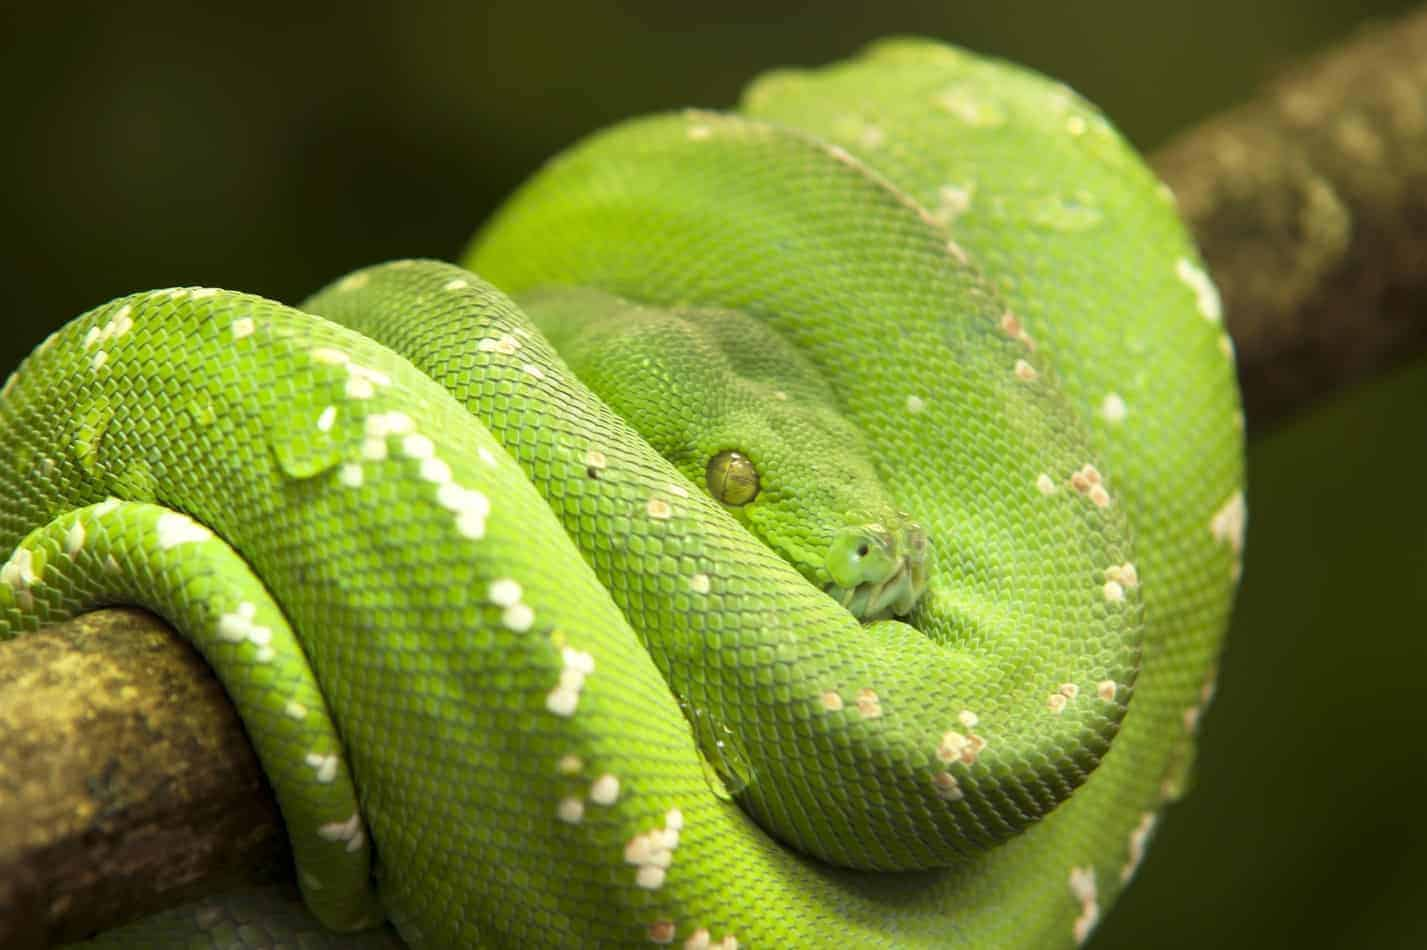 Popular Snake Breeds that are Green